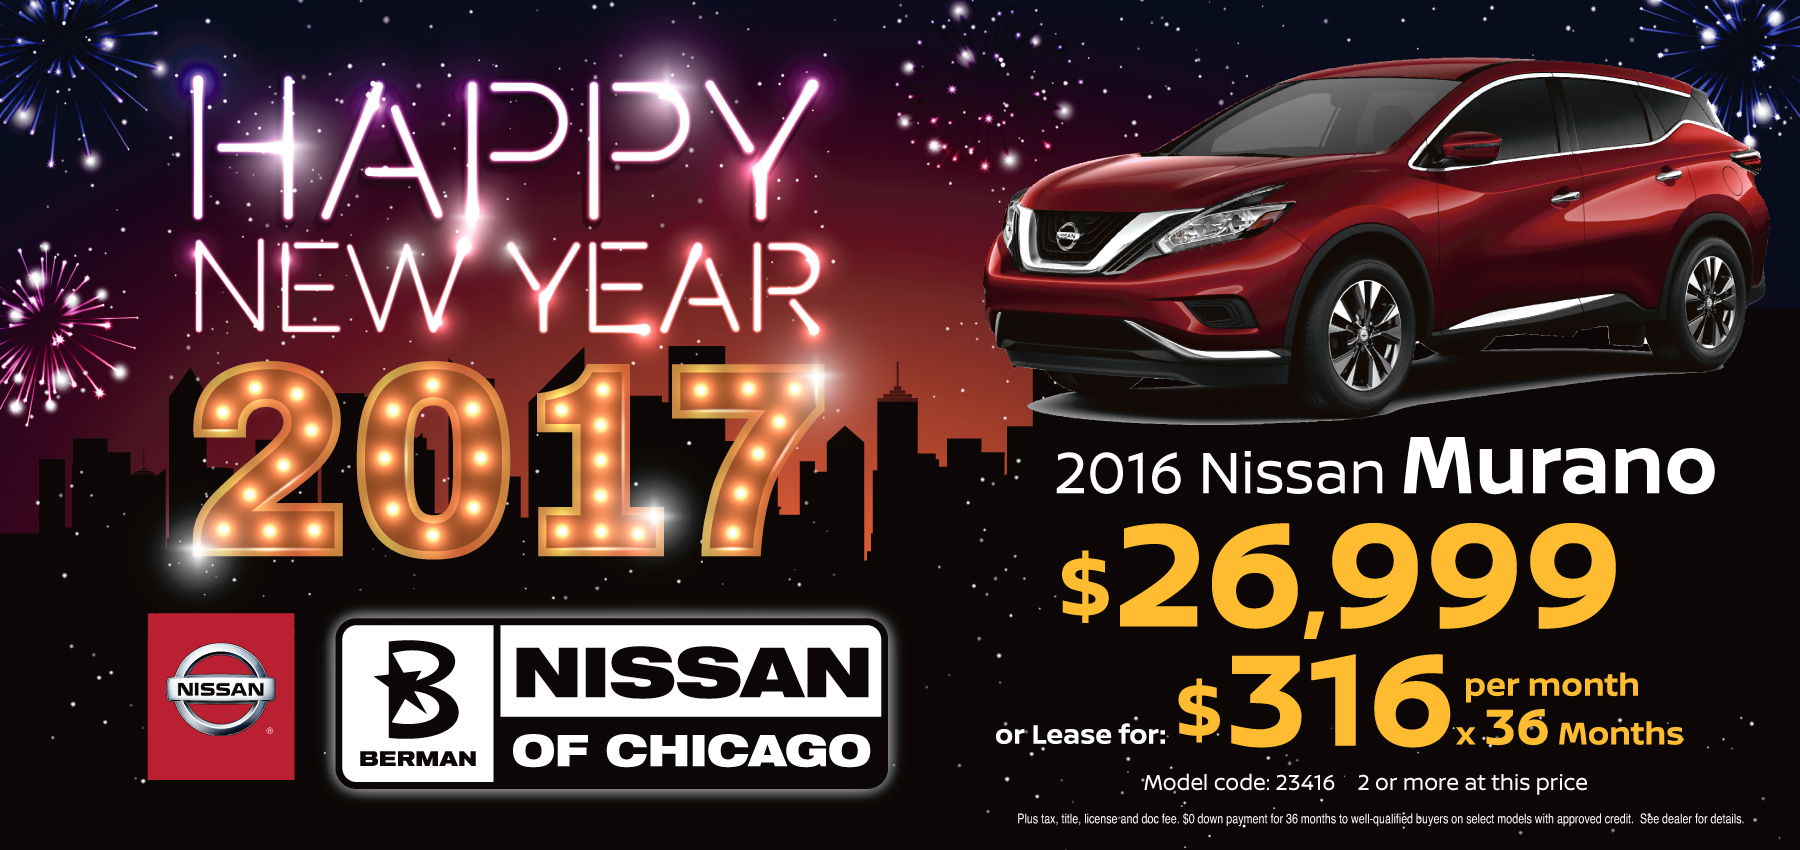 2016 Nissan Murano January Offer